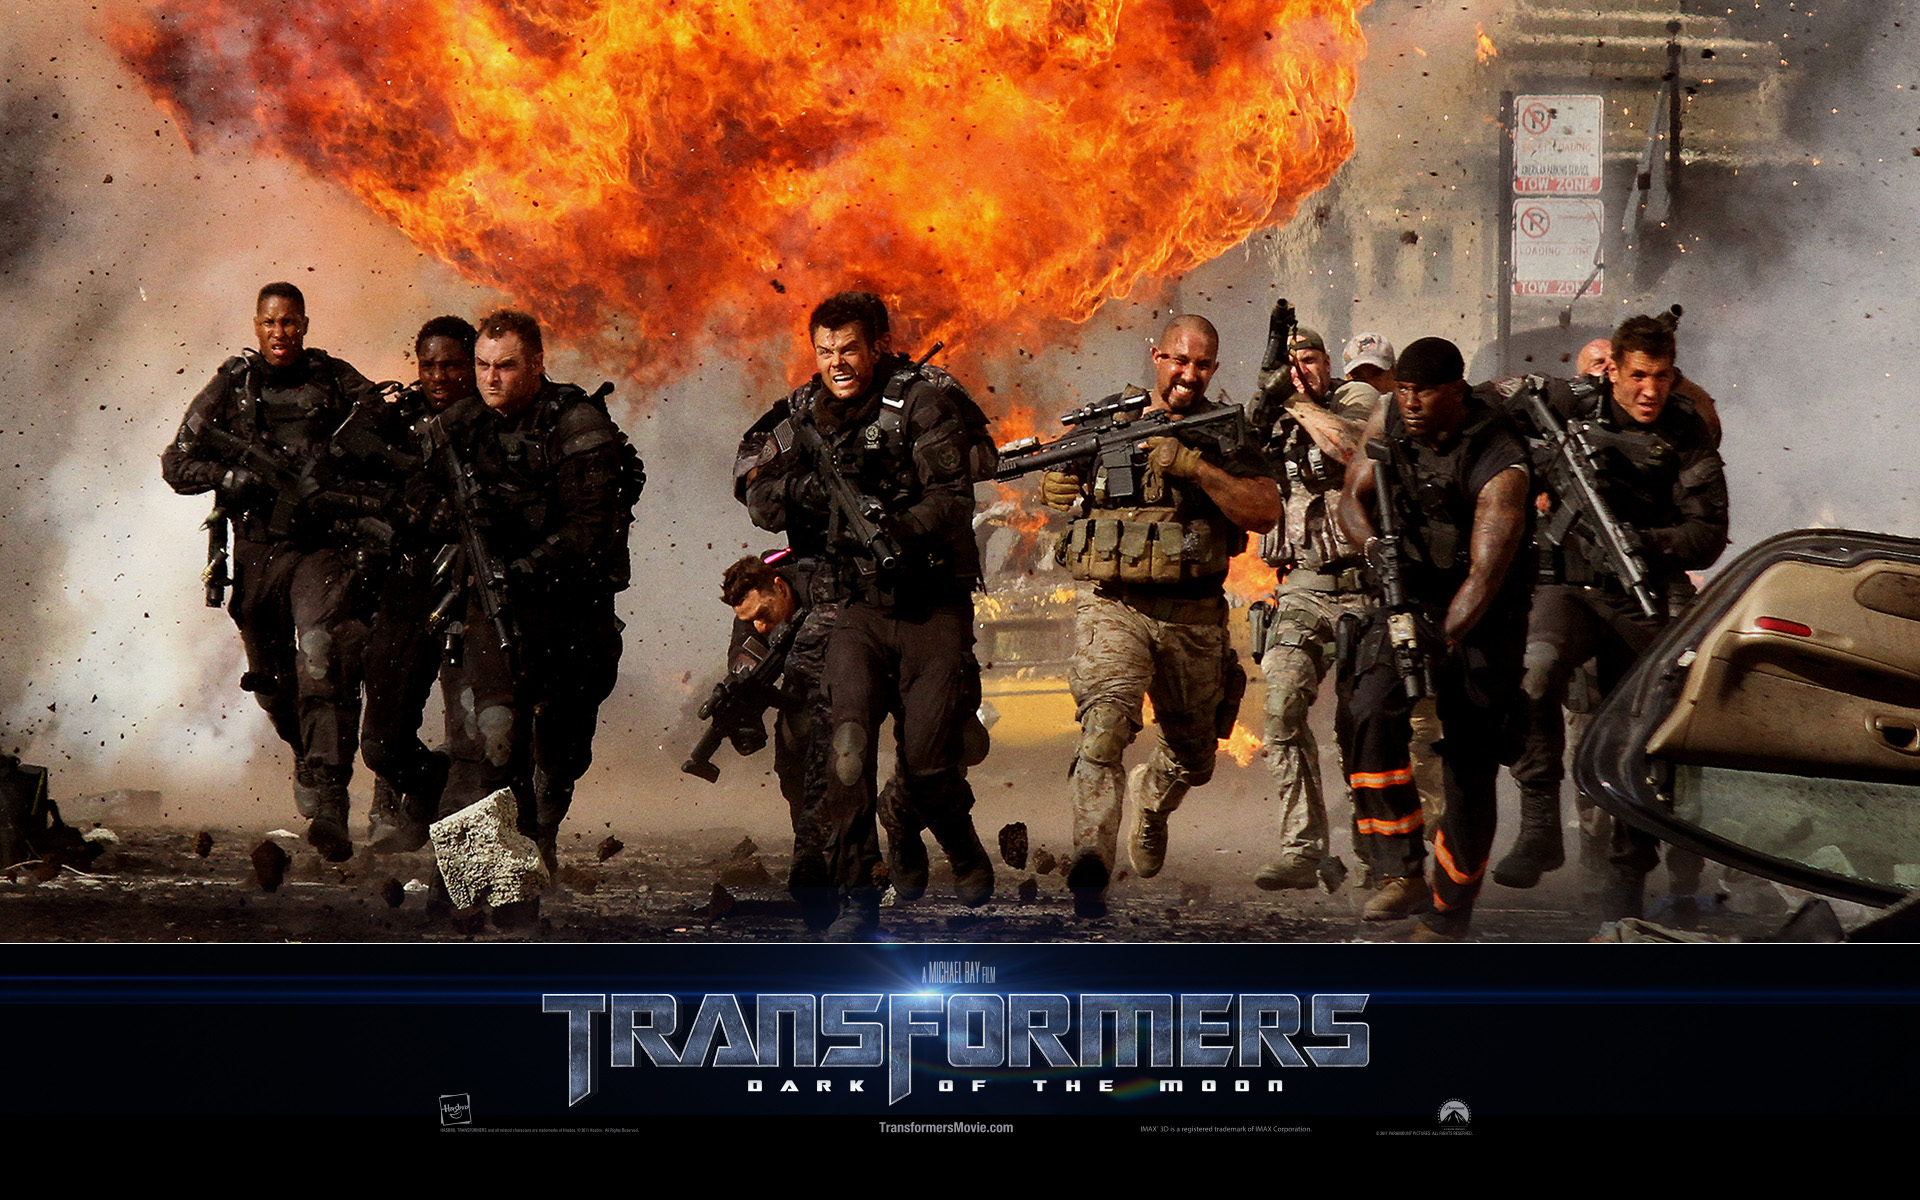 transformers 3 images transformers 3 hd wallpaper and background